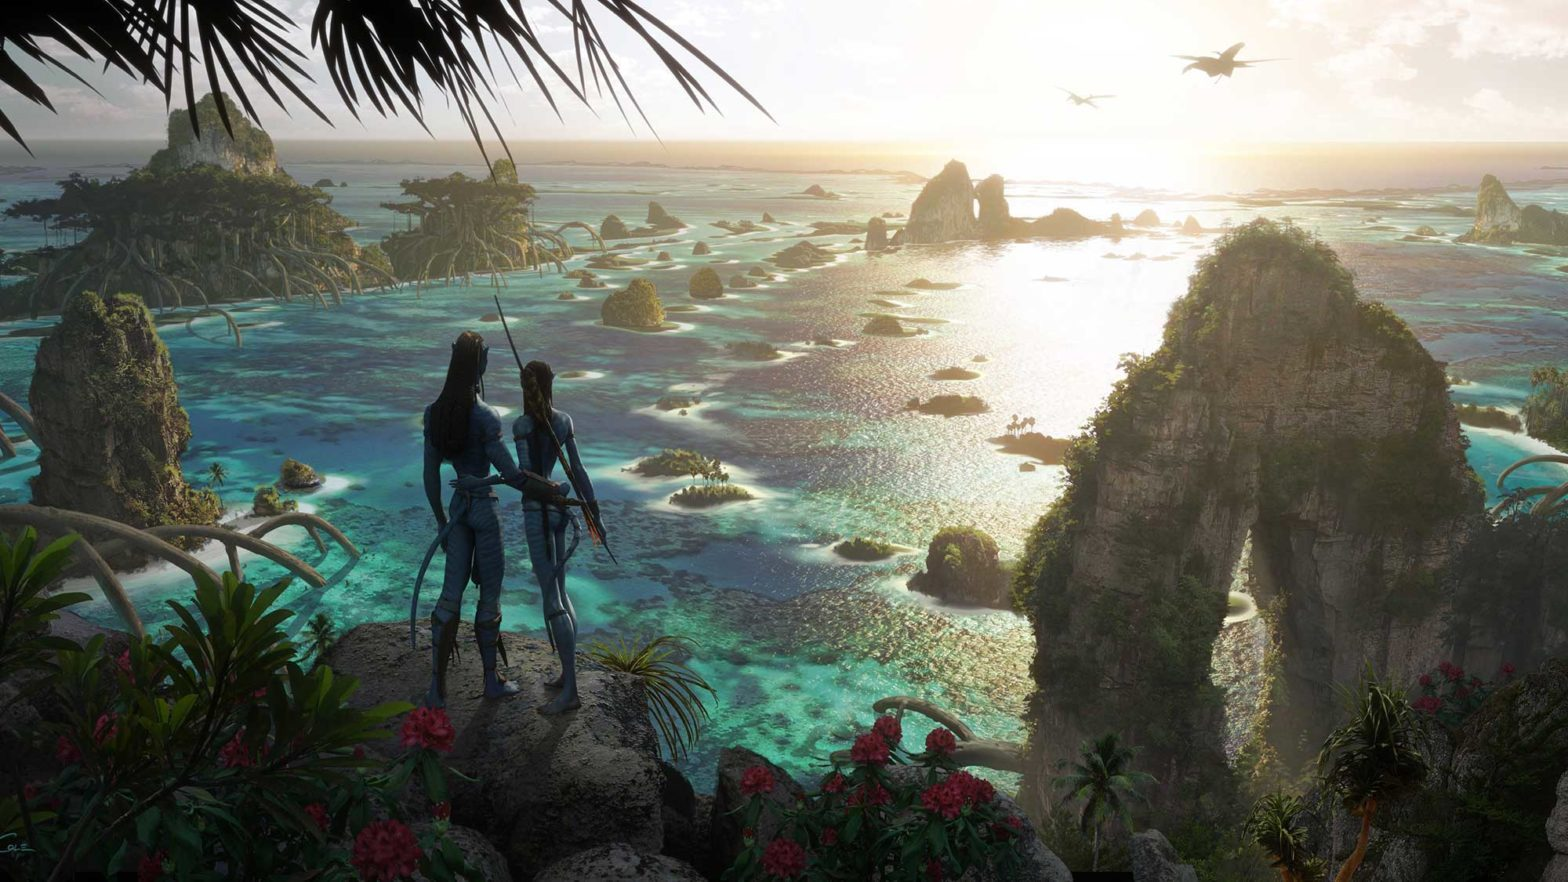 Avatar 2 Concept Art Revealed at CES 2020